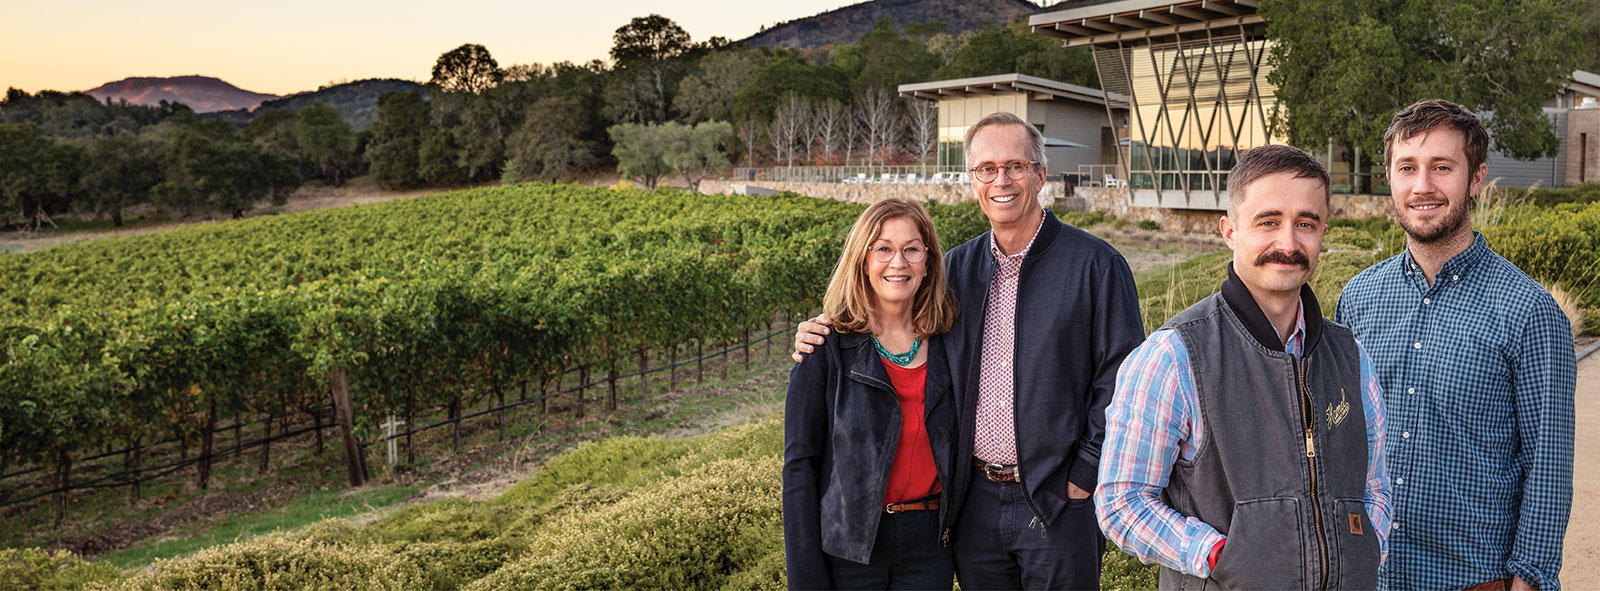 Select to access video of First Republic Wineries / Breweries client(s) Hamel Family Wines